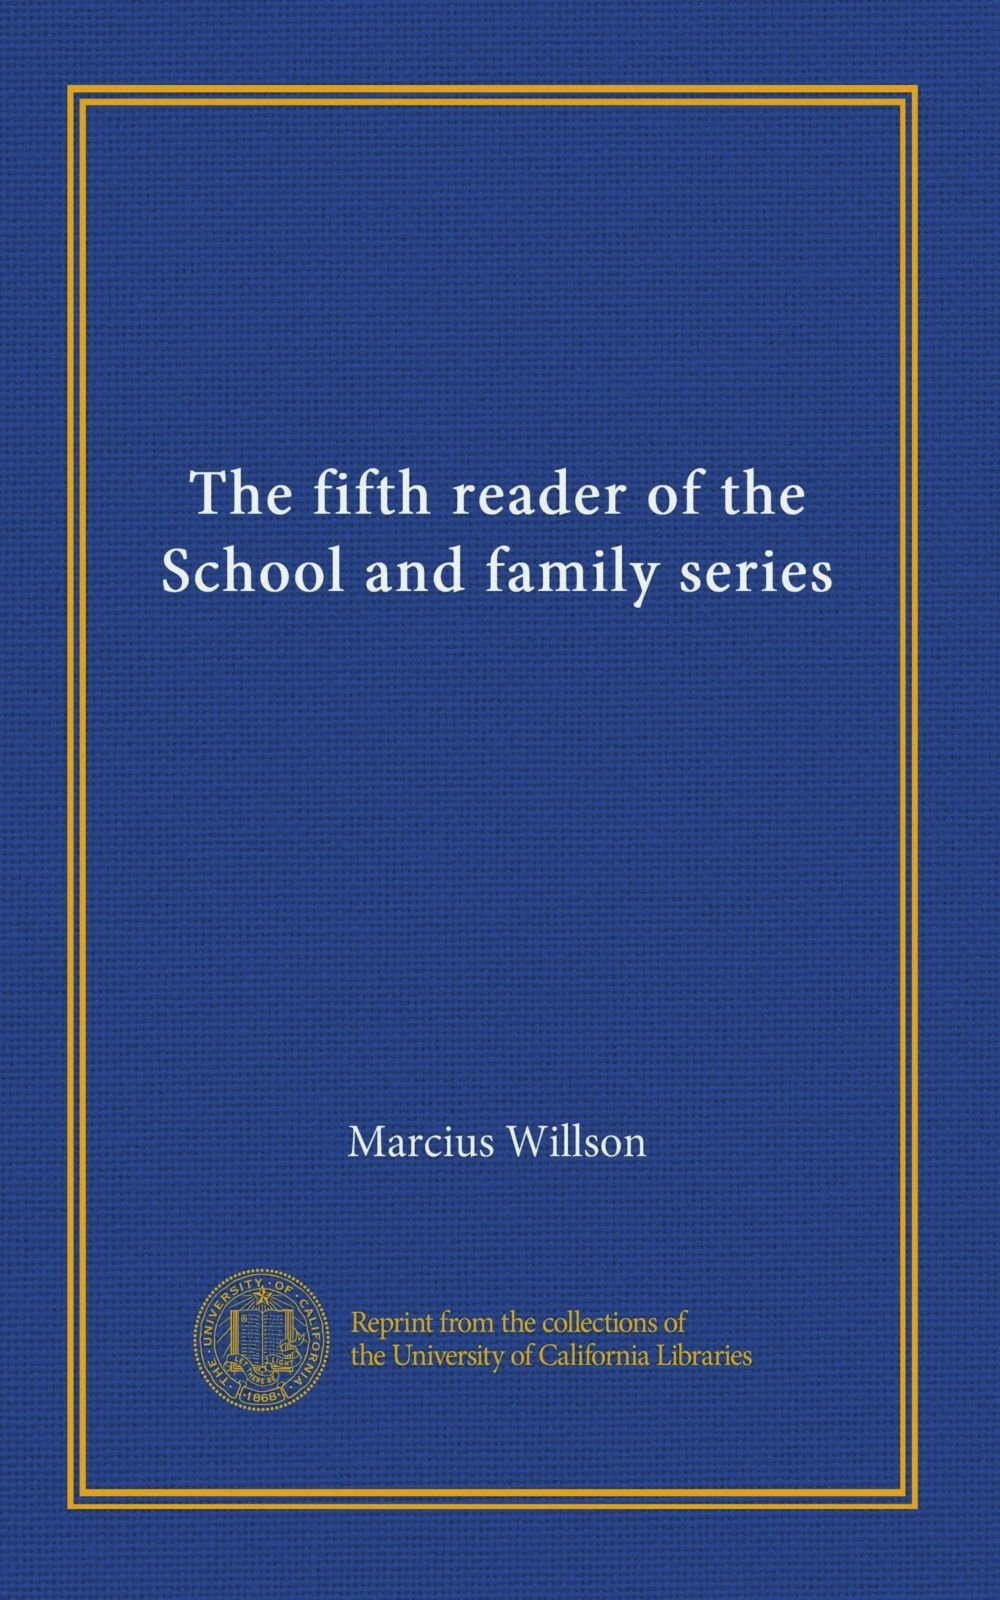 Download The fifth reader of the School and family series ebook